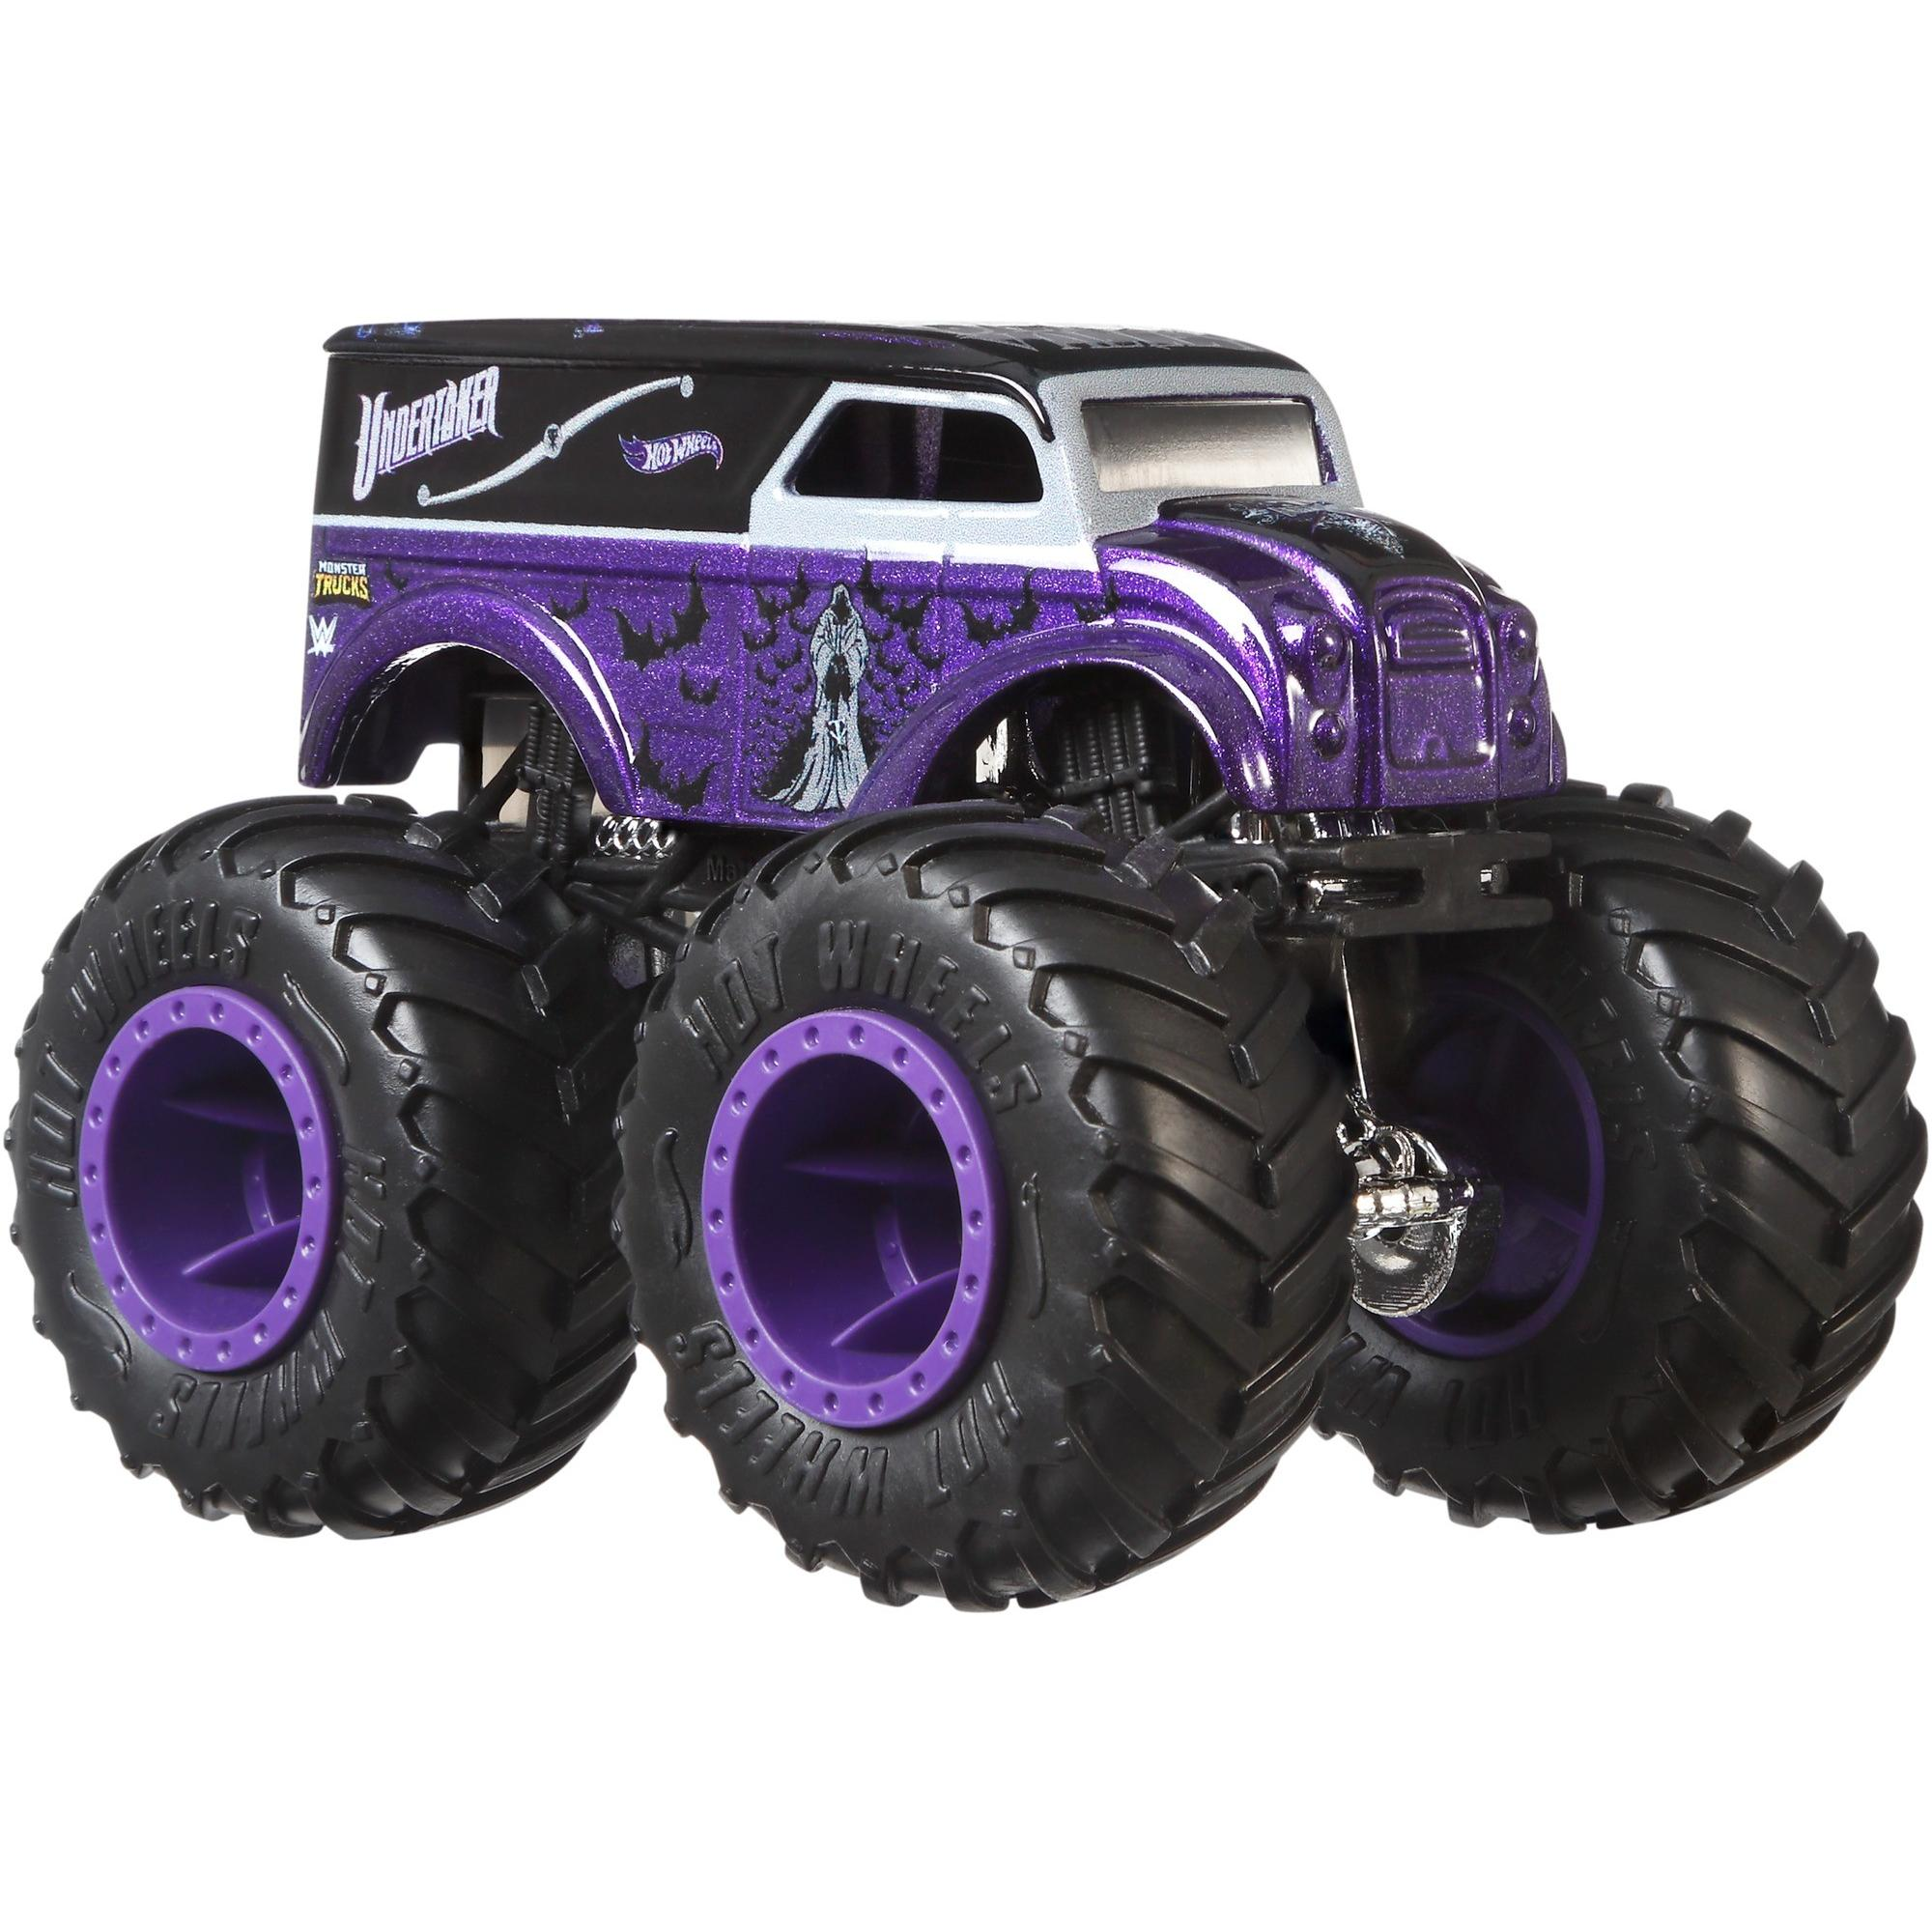 Hot Wheels Monster Trucks Wwe Die Cast Collection Styles May Vary Walmart Com Walmart Com